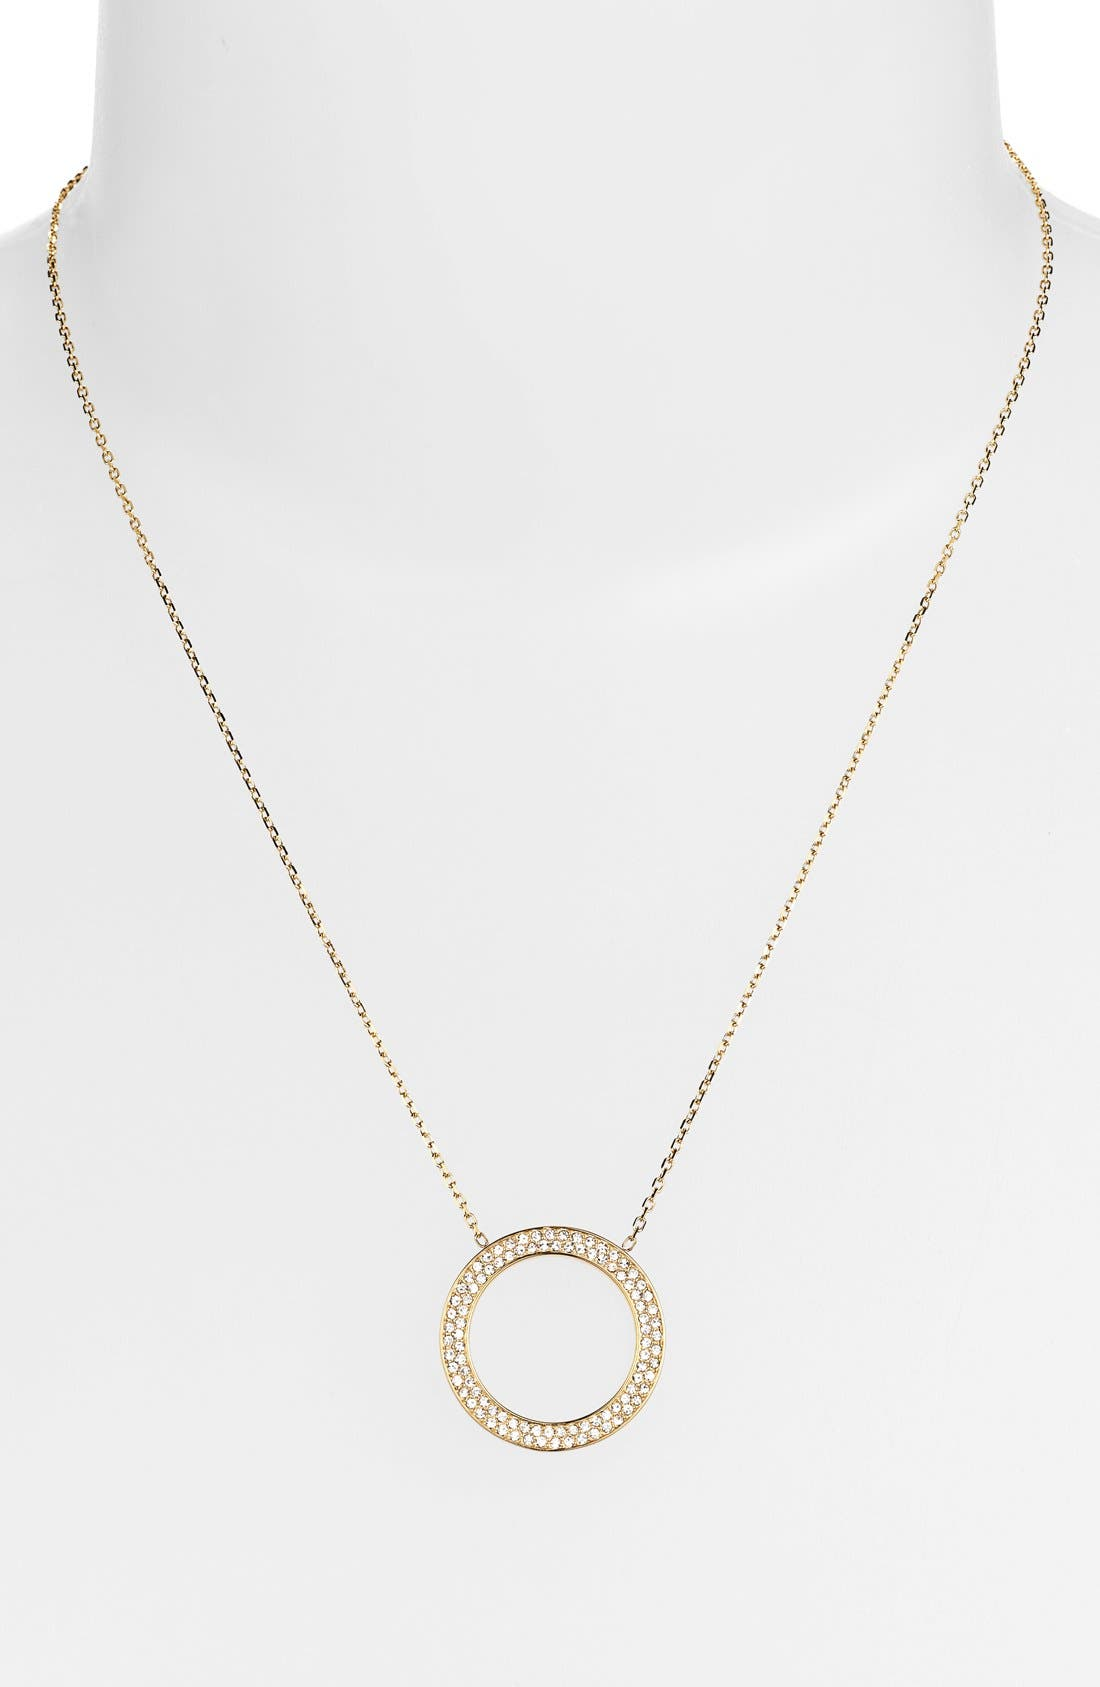 Alternate Image 1 Selected - Michael Kors 'Statement Brilliance' Circle Pendant Necklace